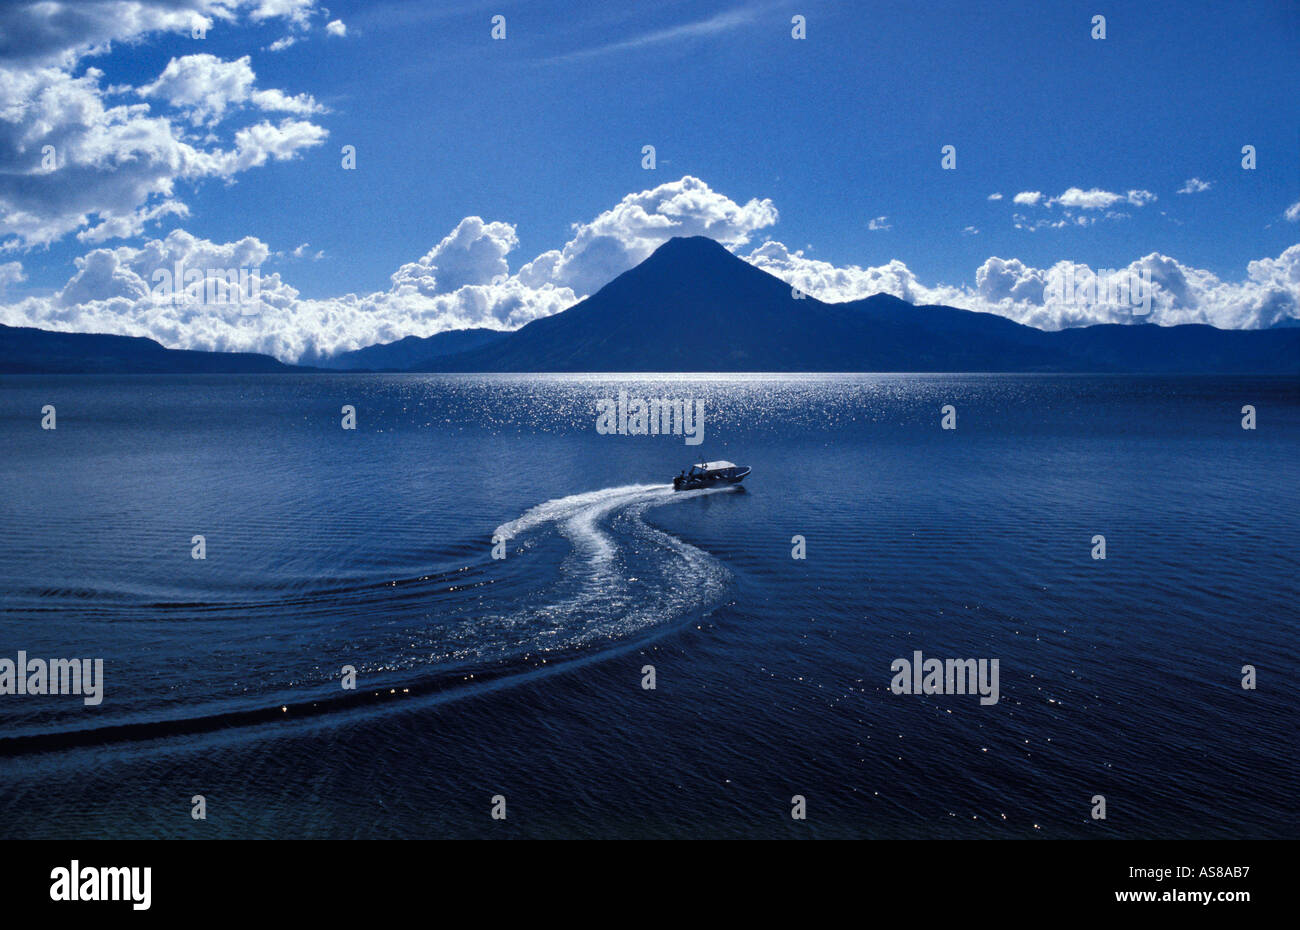 View across Lake Atitlan from the foot of Calle Santander Panajachel Boat speeding across lake San Pedro volcano - Stock Image